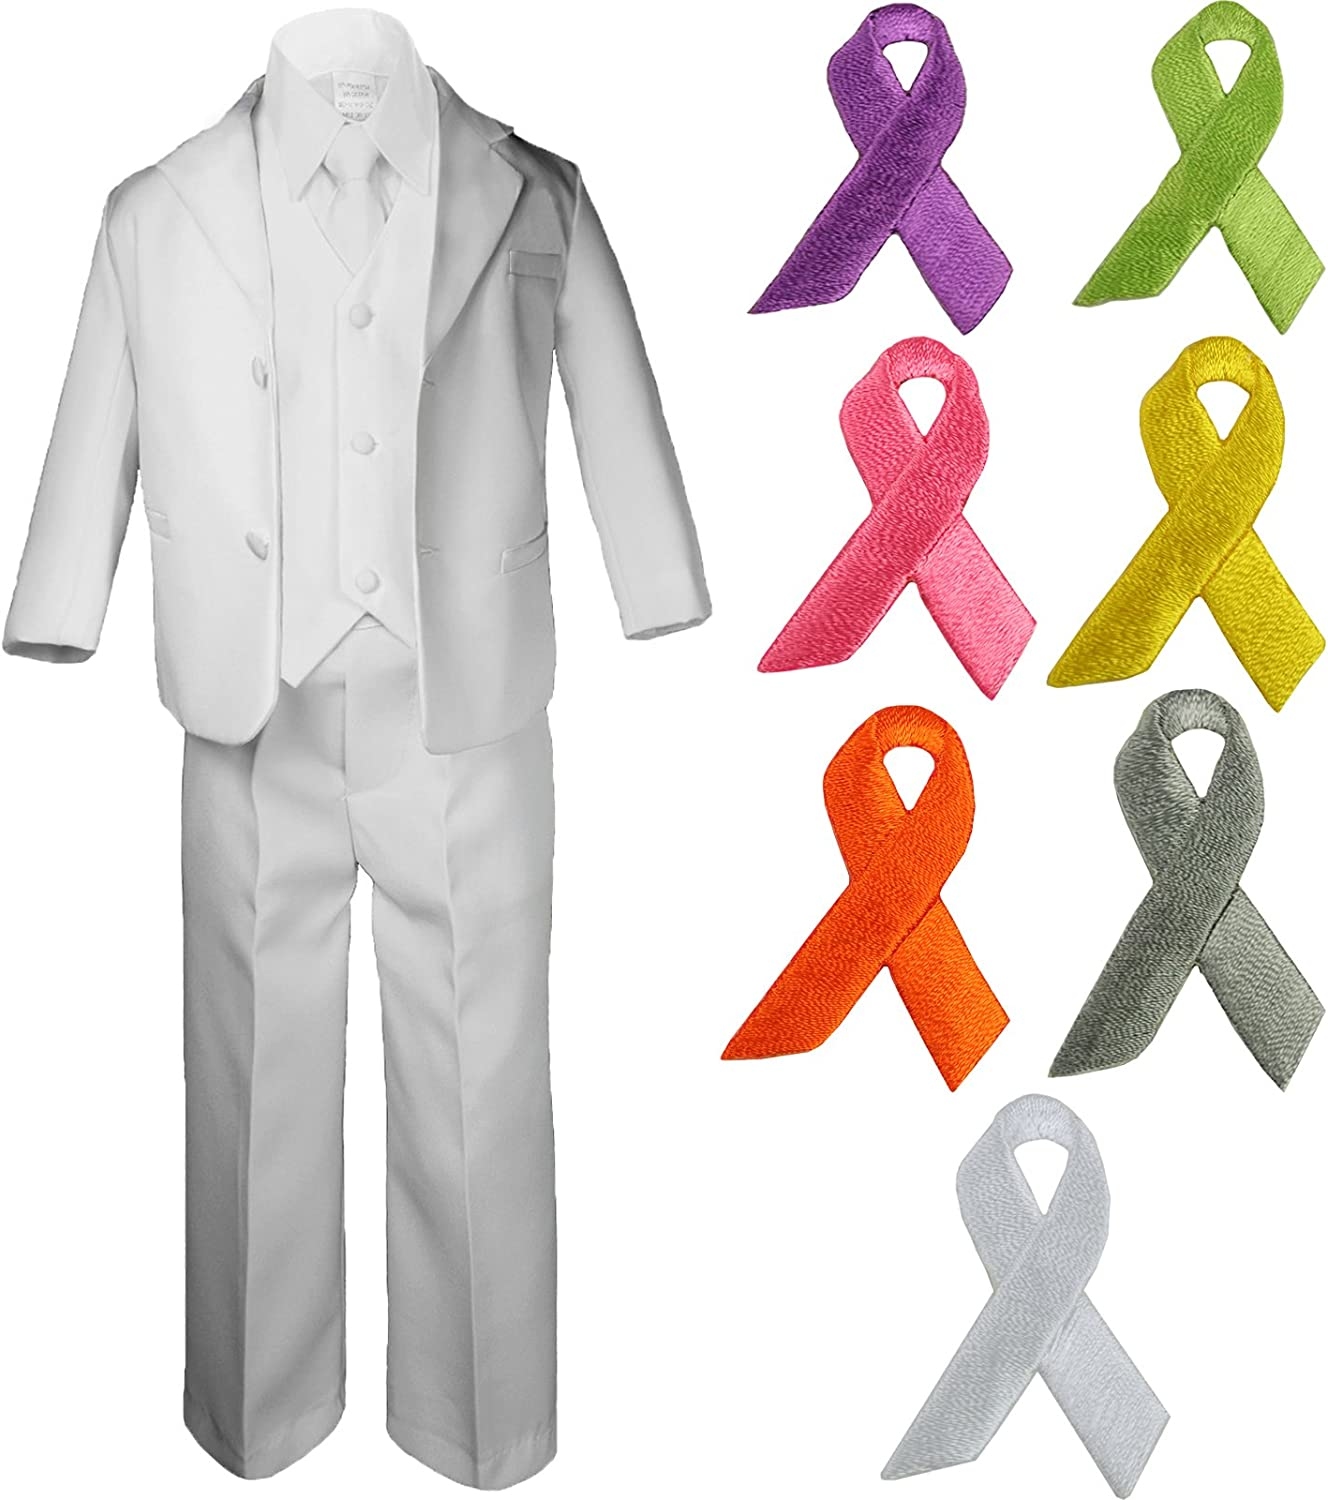 5pc Baby Boy Teen WHITE SUIT w/ Cancer Awareness Ribbon Adhesive LOVE HOPE Patch